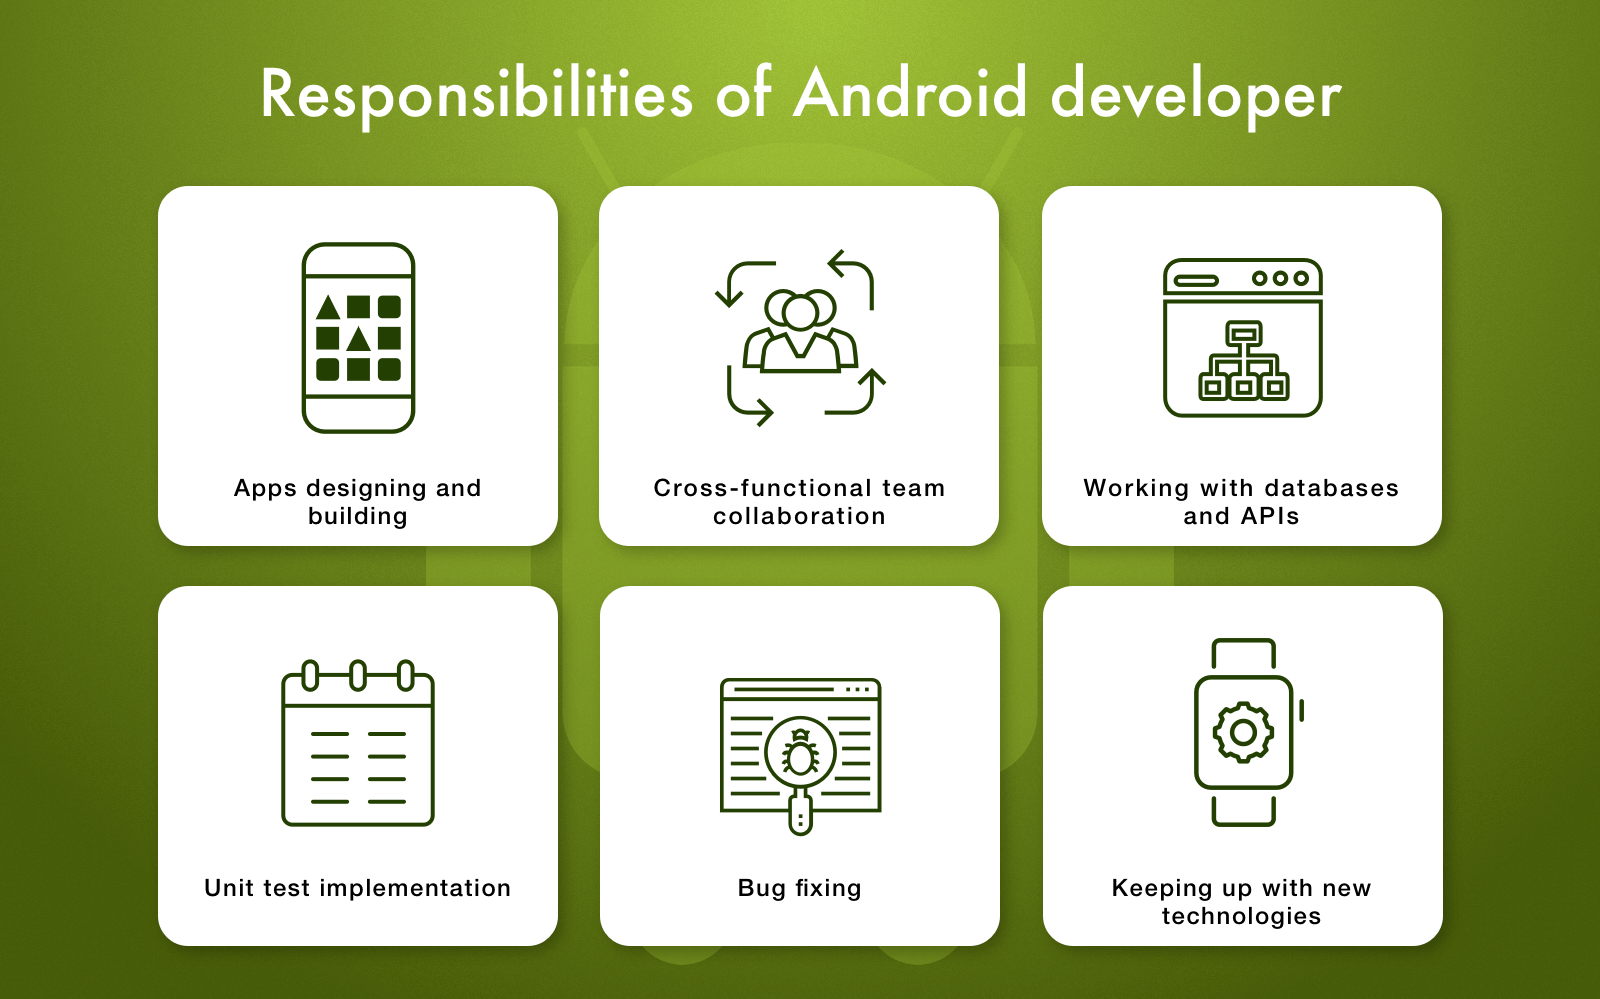 roles and responsibilities of android developer